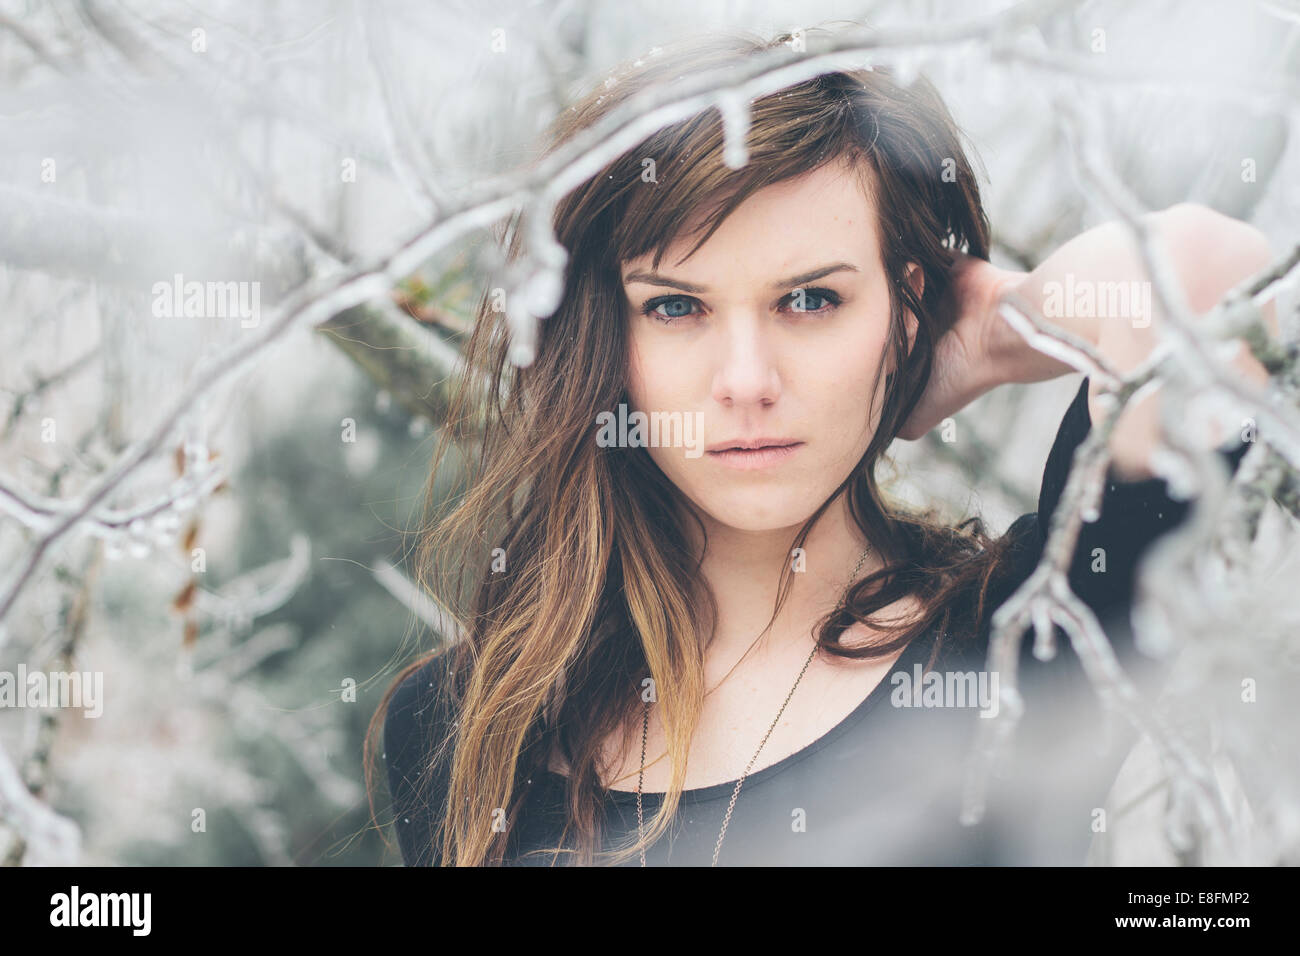 Portrait of young woman standing amongst frozen branches - Stock Image